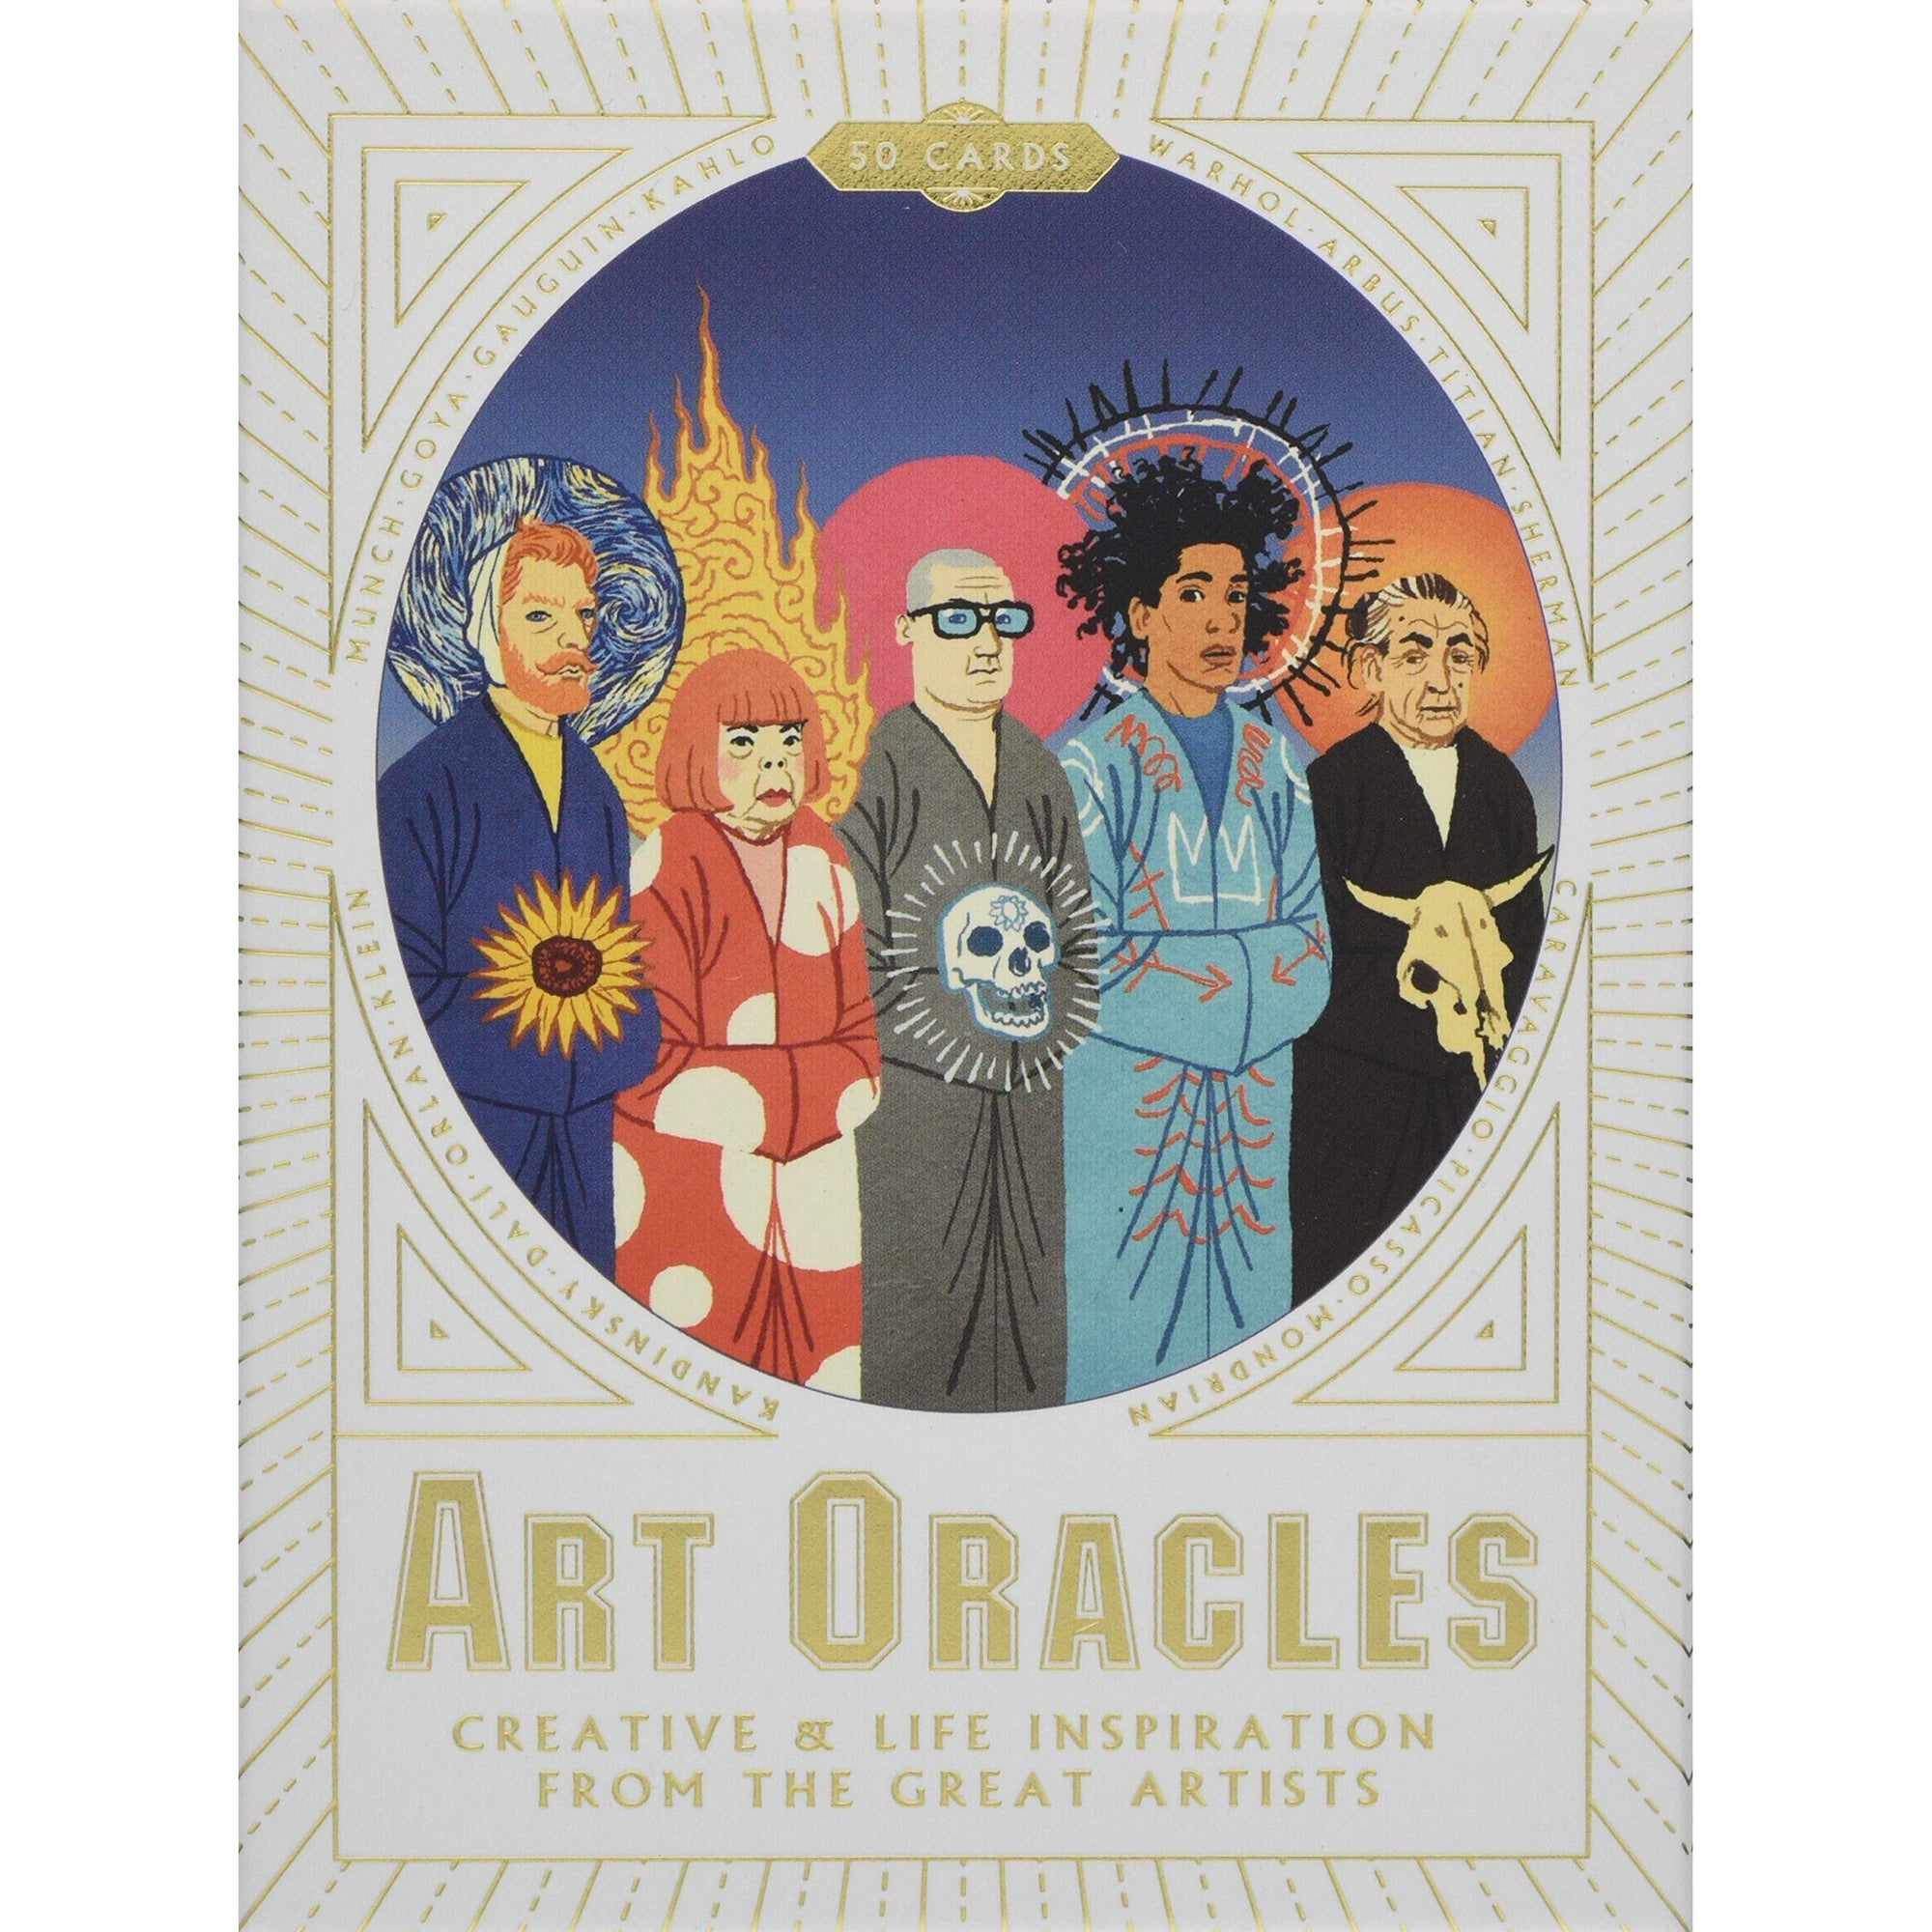 Box of Art Oracles